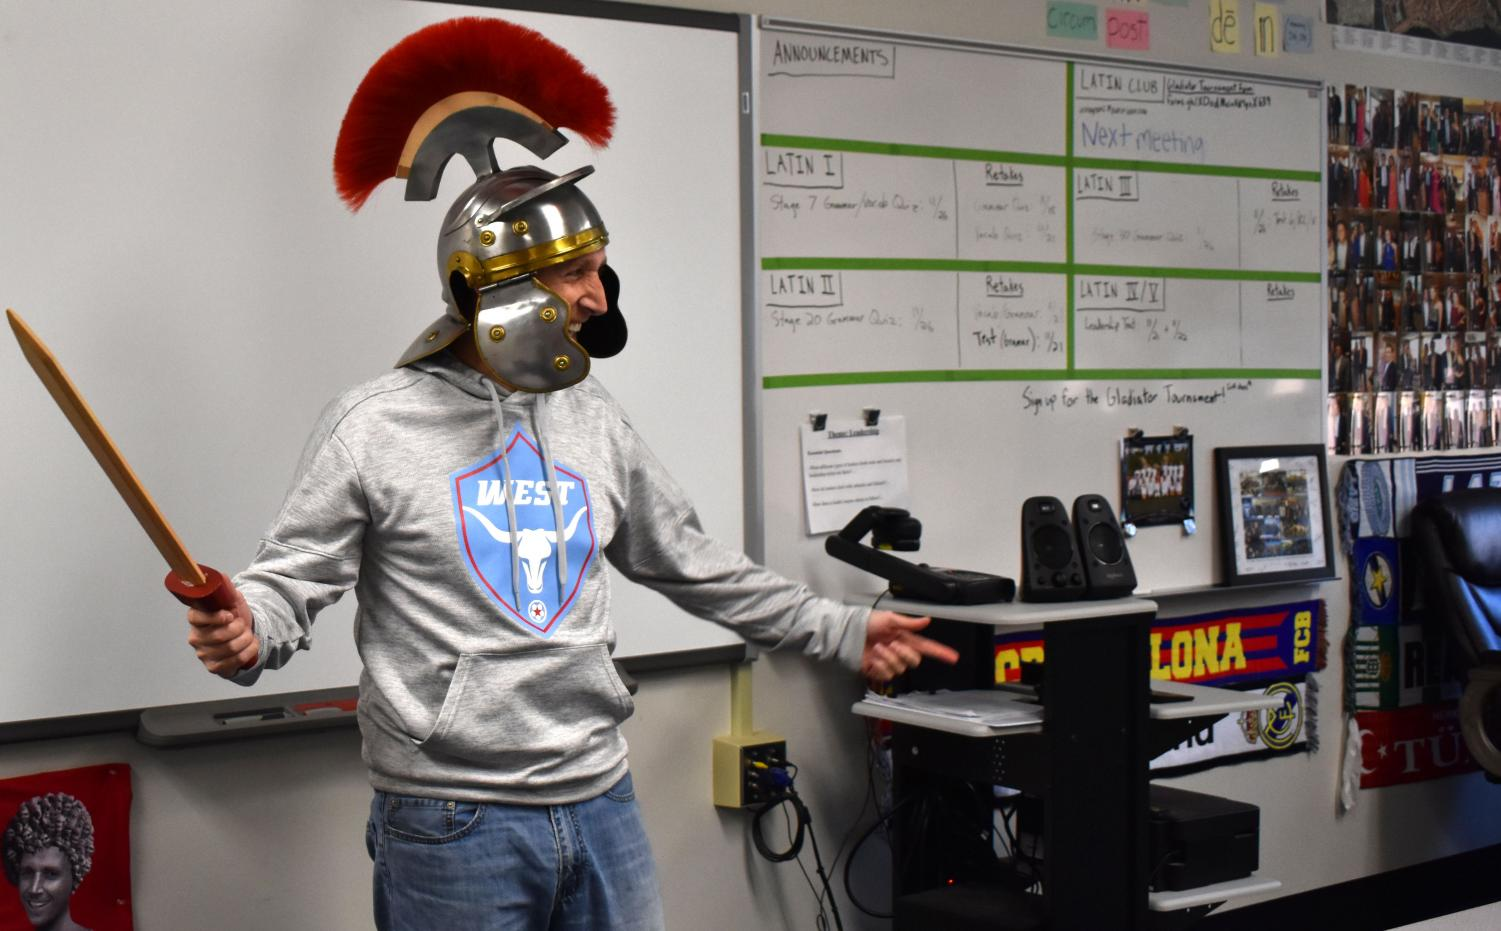 """Latin teacher Tom Herpel entertains students with a sword and a gladiator helmet. In class, Herpel focused on the learning process while making the class enjoyable for students and involving cultural experiences. """"I'll always remember the vocative tense, or command tense, because we learned it and vocab by doing yoga-like the game Twister,"""" Rutledge said."""